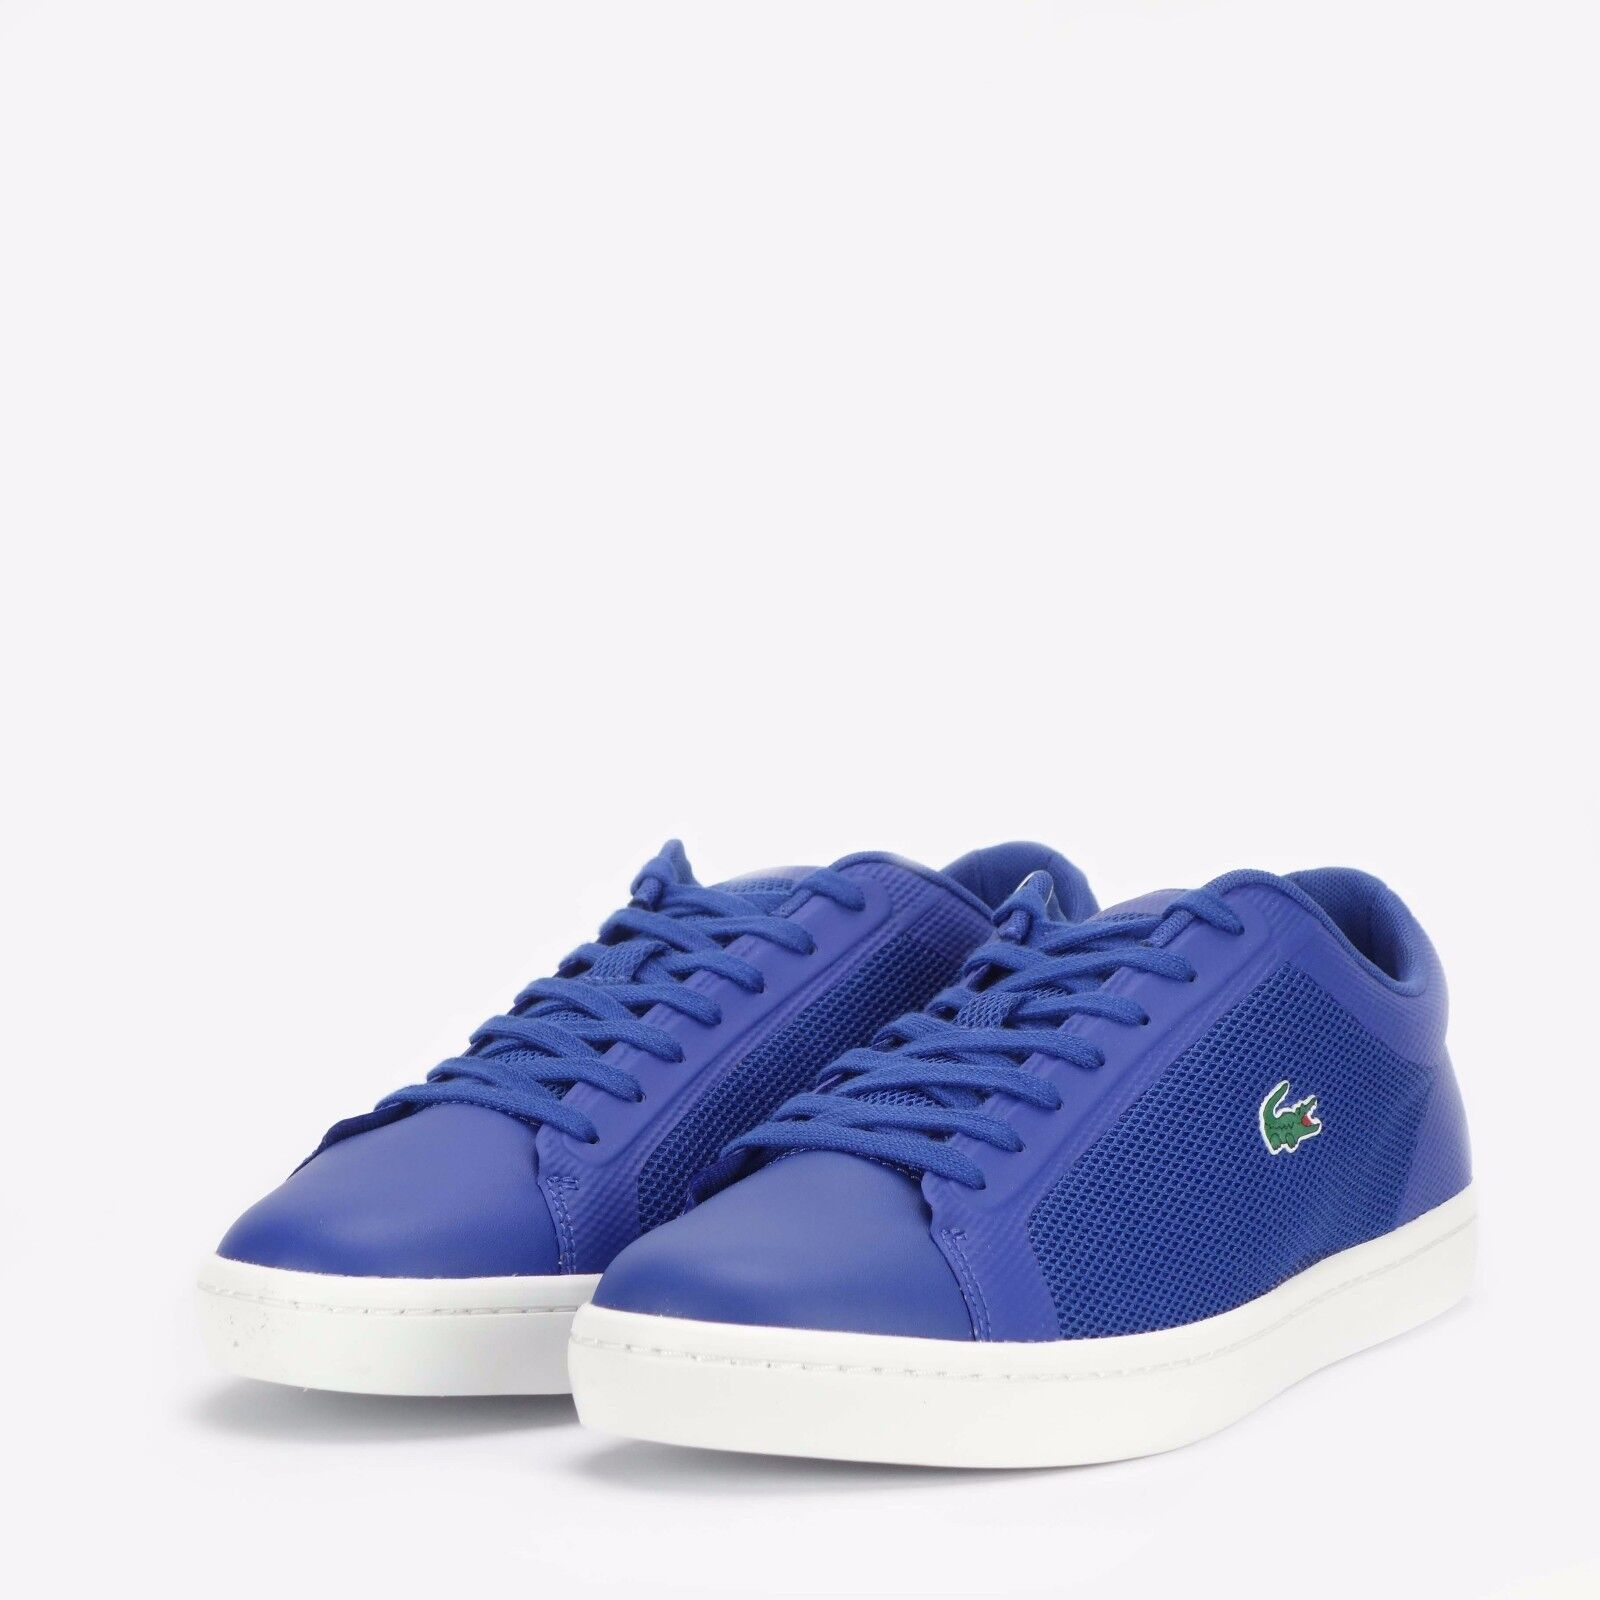 Lacoste Straightset  in homme chaussures in  Dark Bleu 83cffe